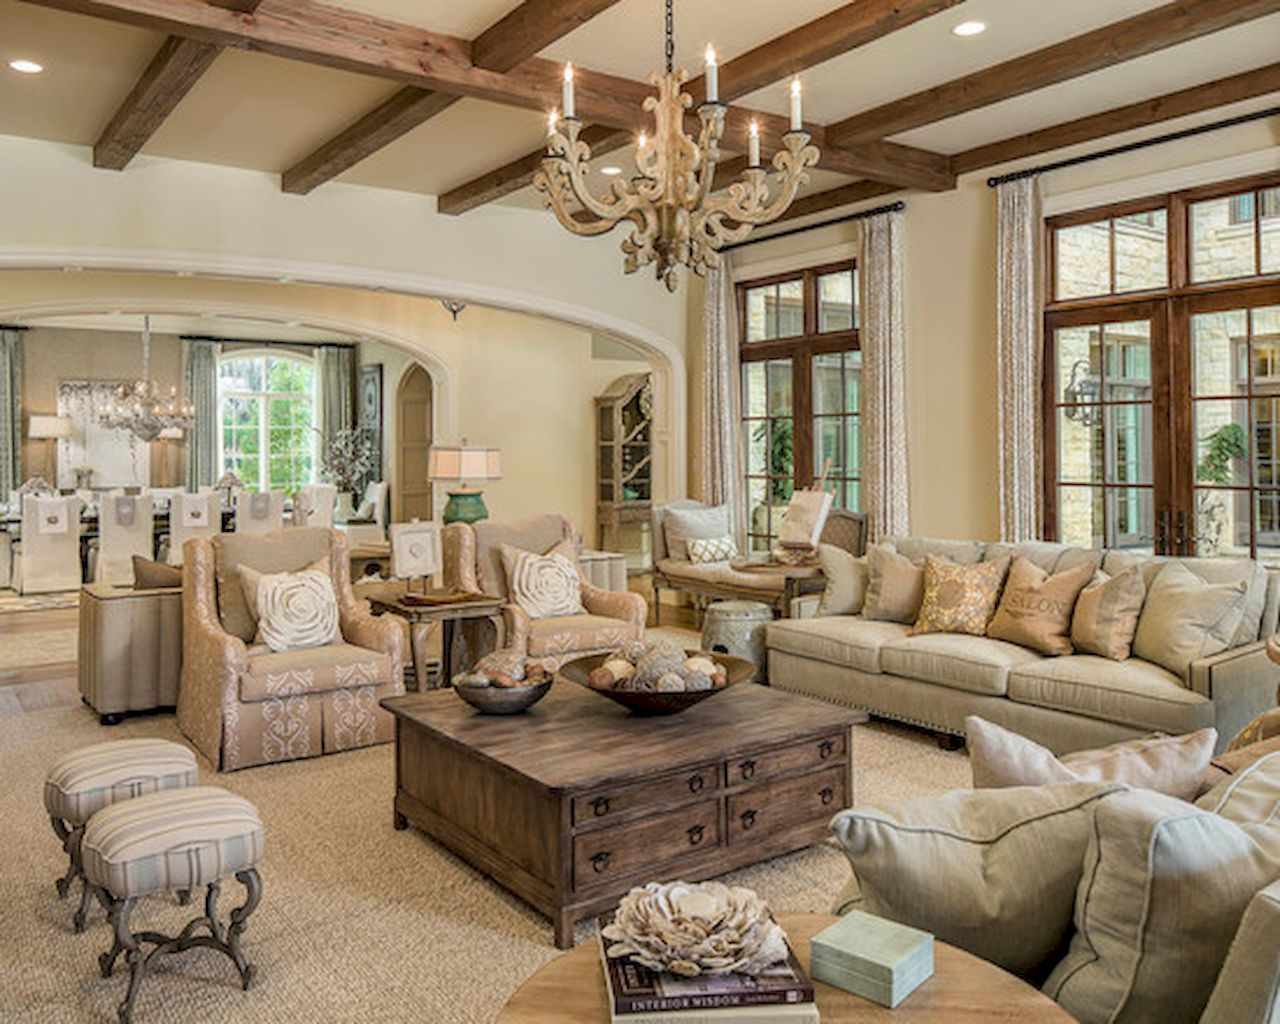 Image result for french country living room | French country ...